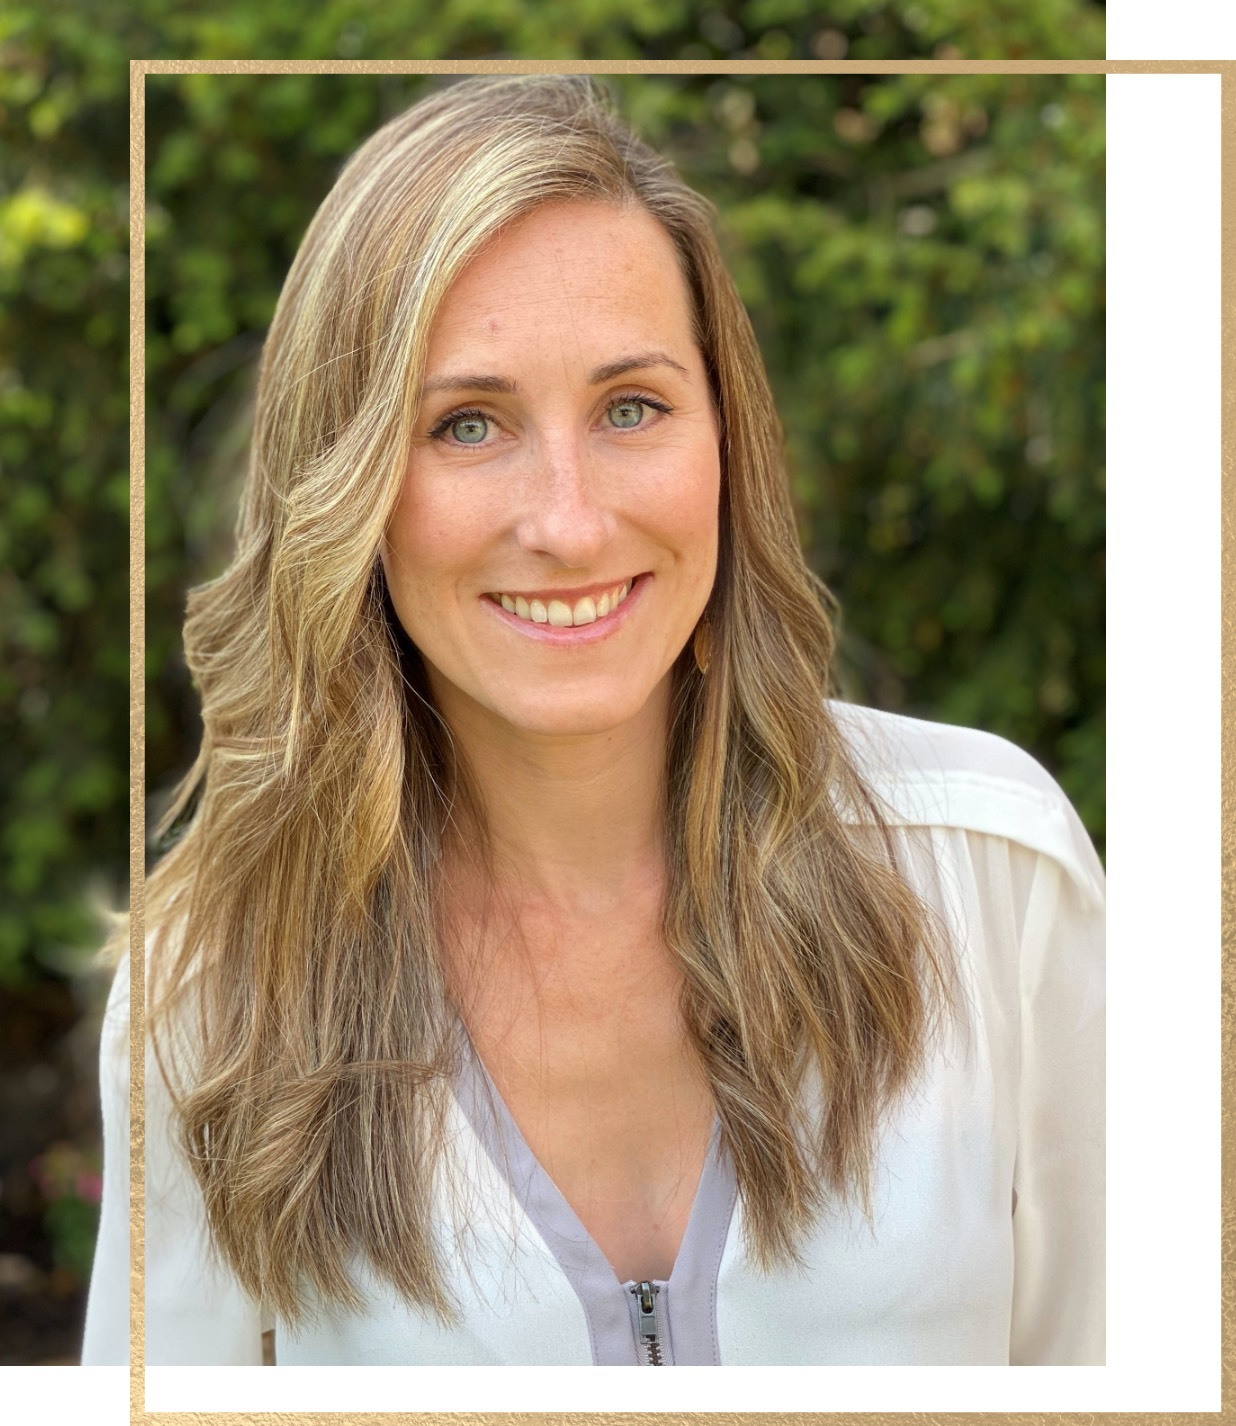 Melissa Turner - founder of the The Chronic Wellness Project